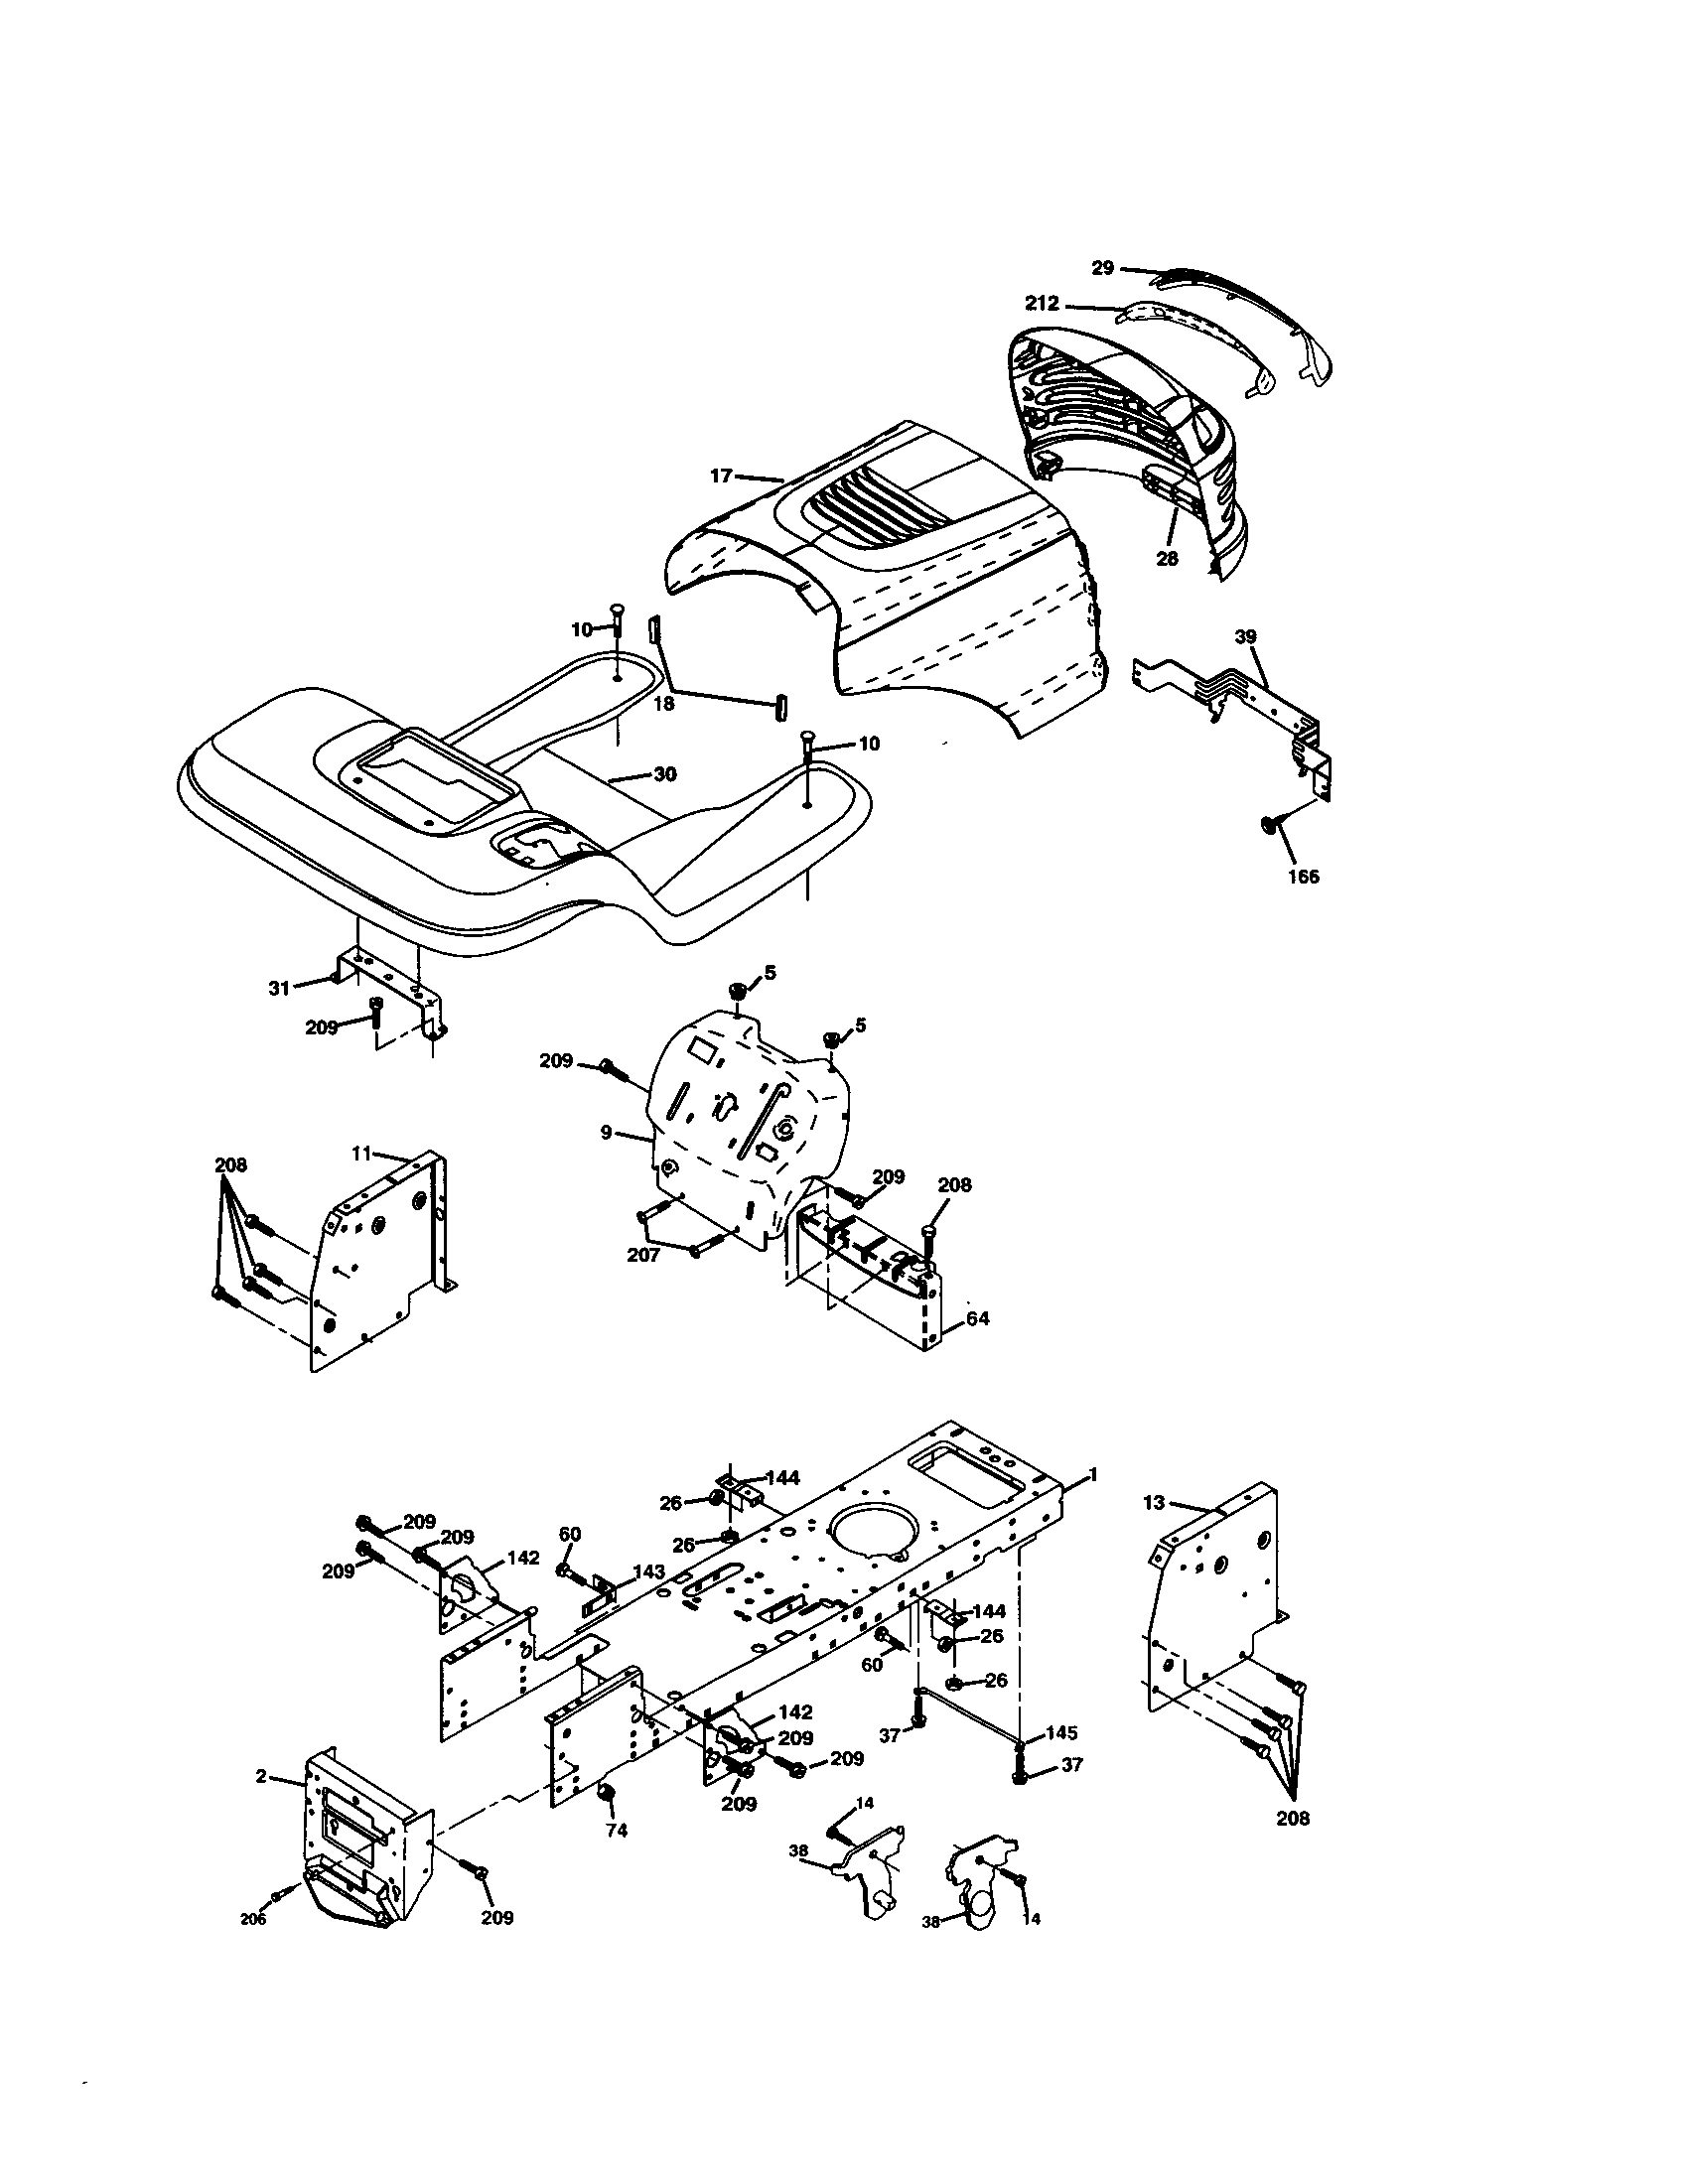 Craftsman 917278041 chassis and enclosures diagram